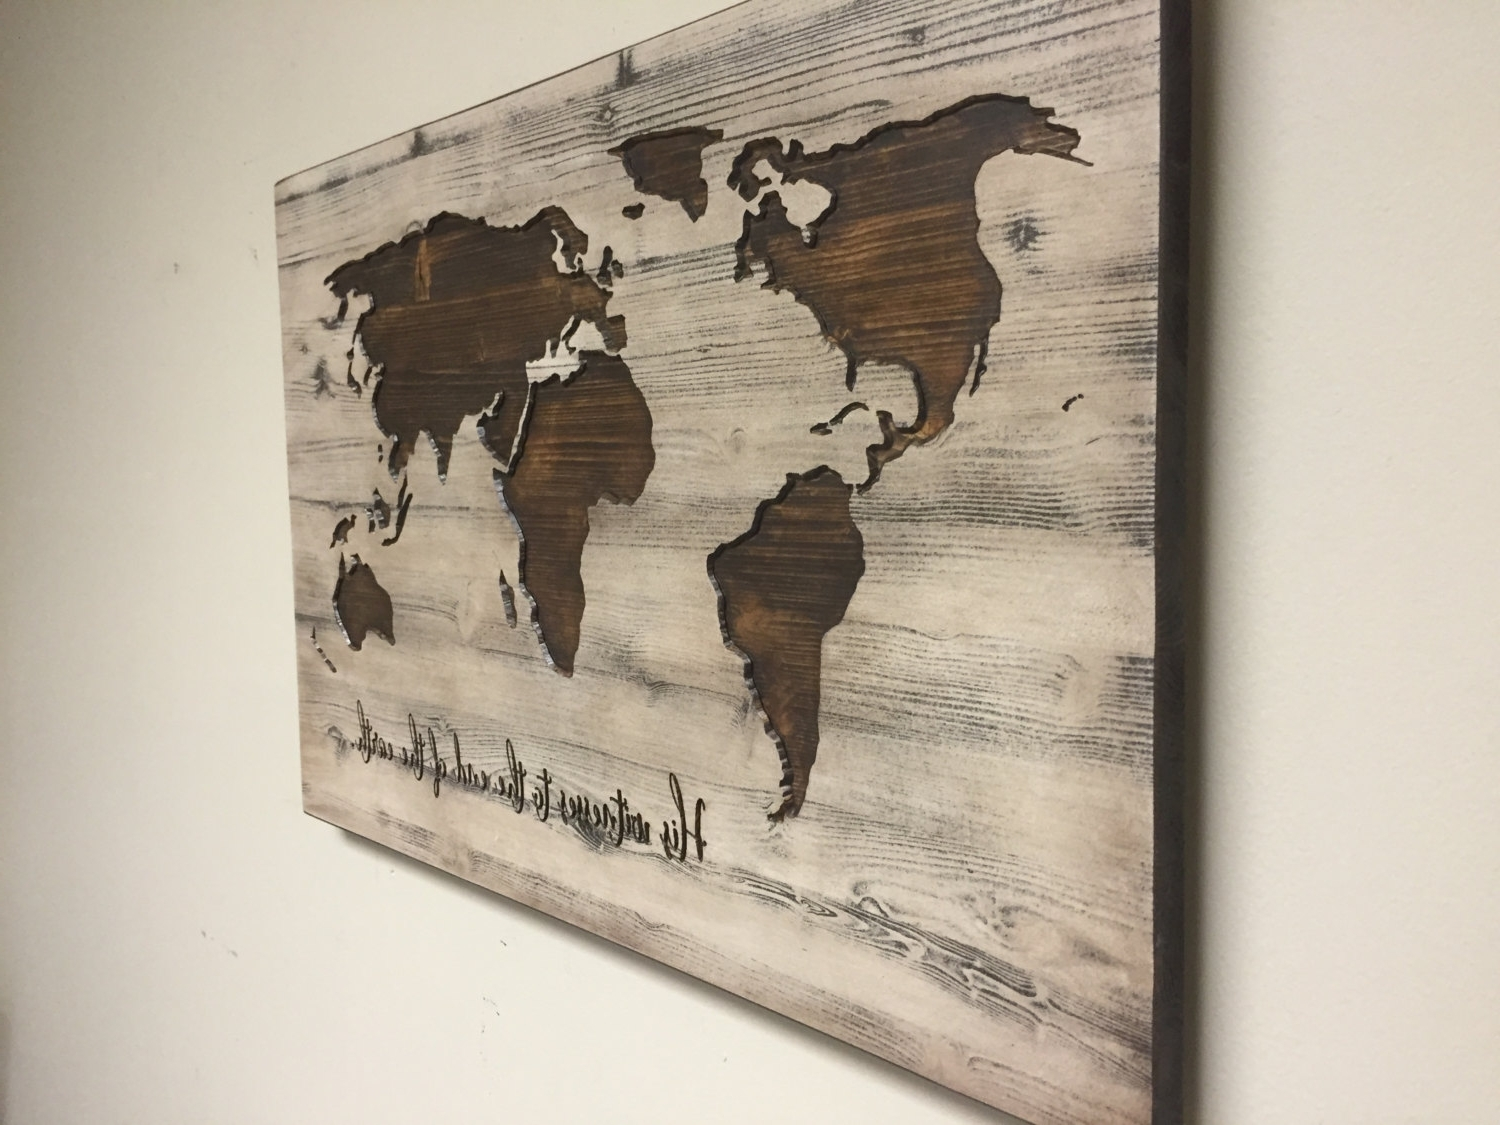 Old World Map Wall Art For Preferred World Map Wall Art Spiritual Vintage Carved Wood His With (View 7 of 15)